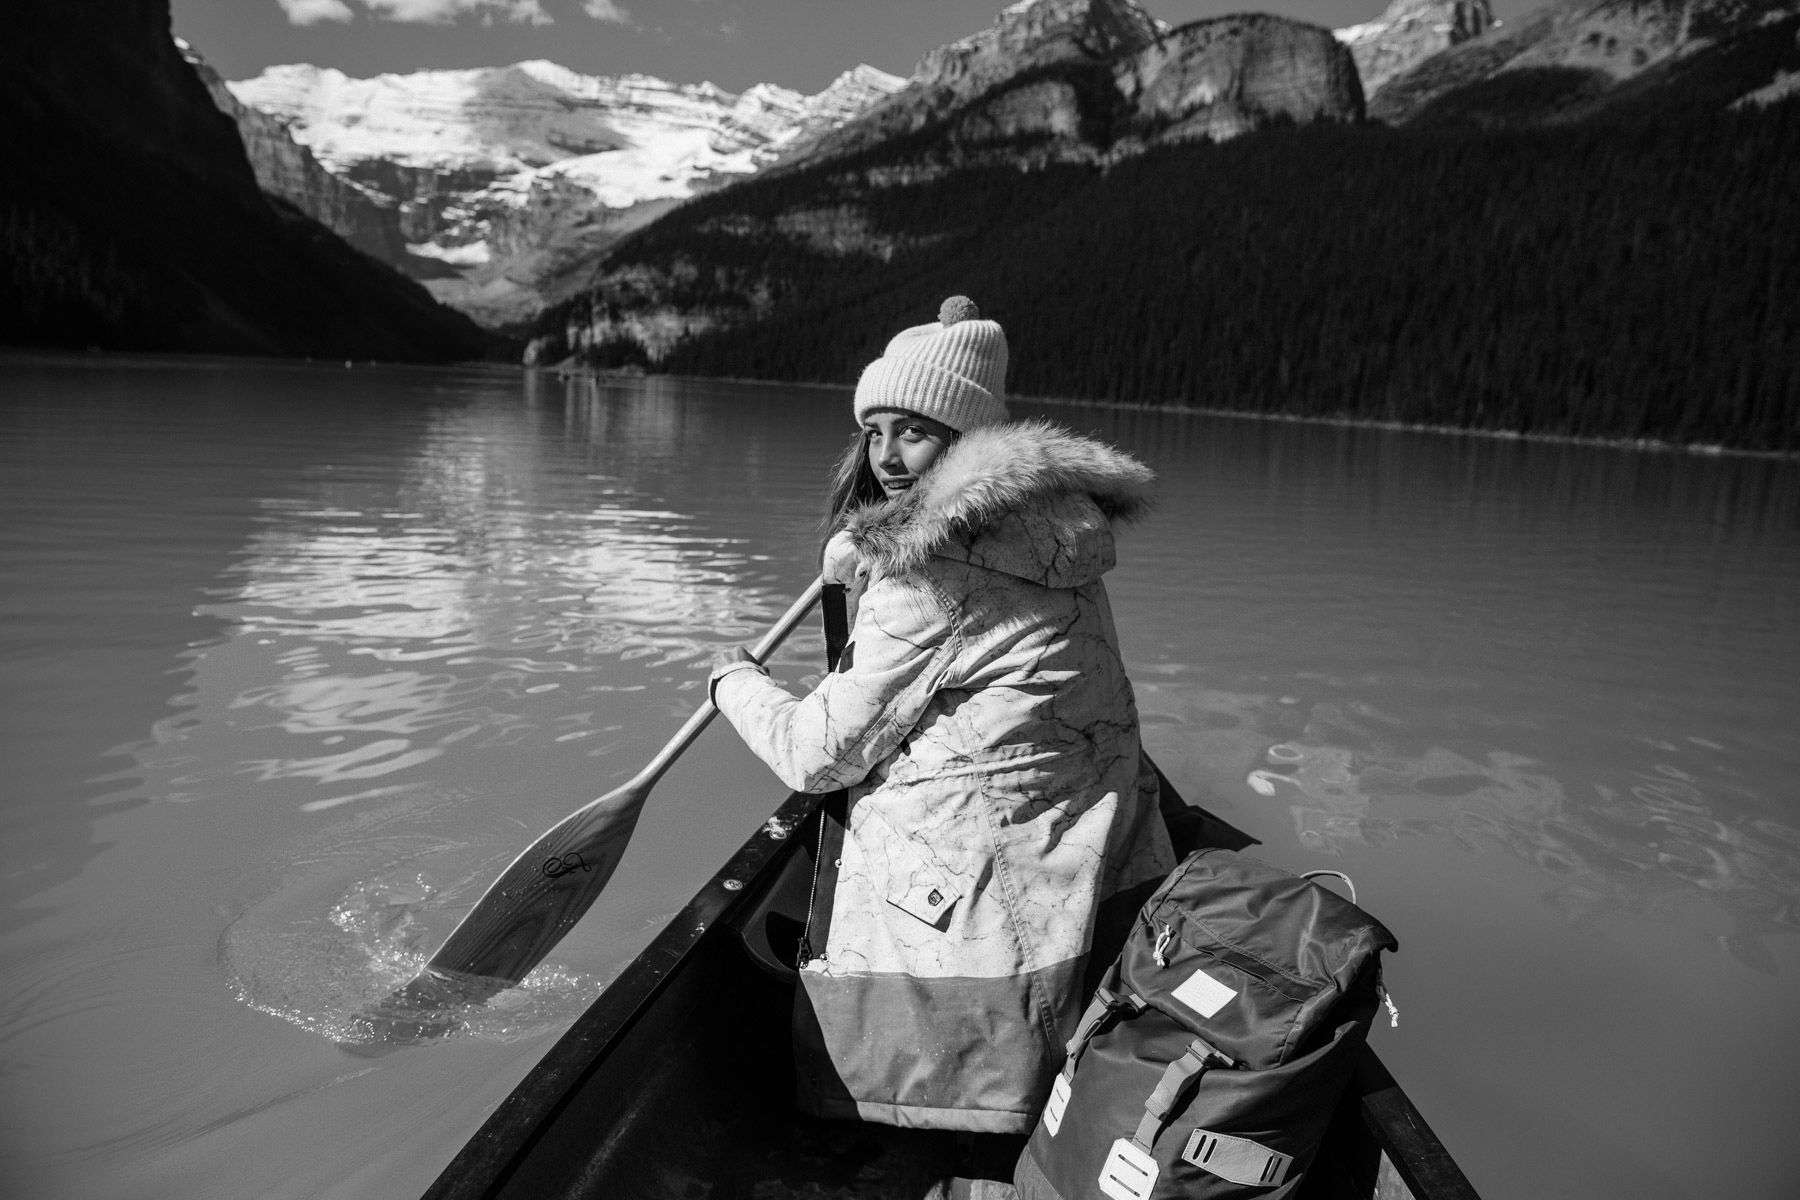 Melrose Boyer, Paddle Boat, Lake Louise